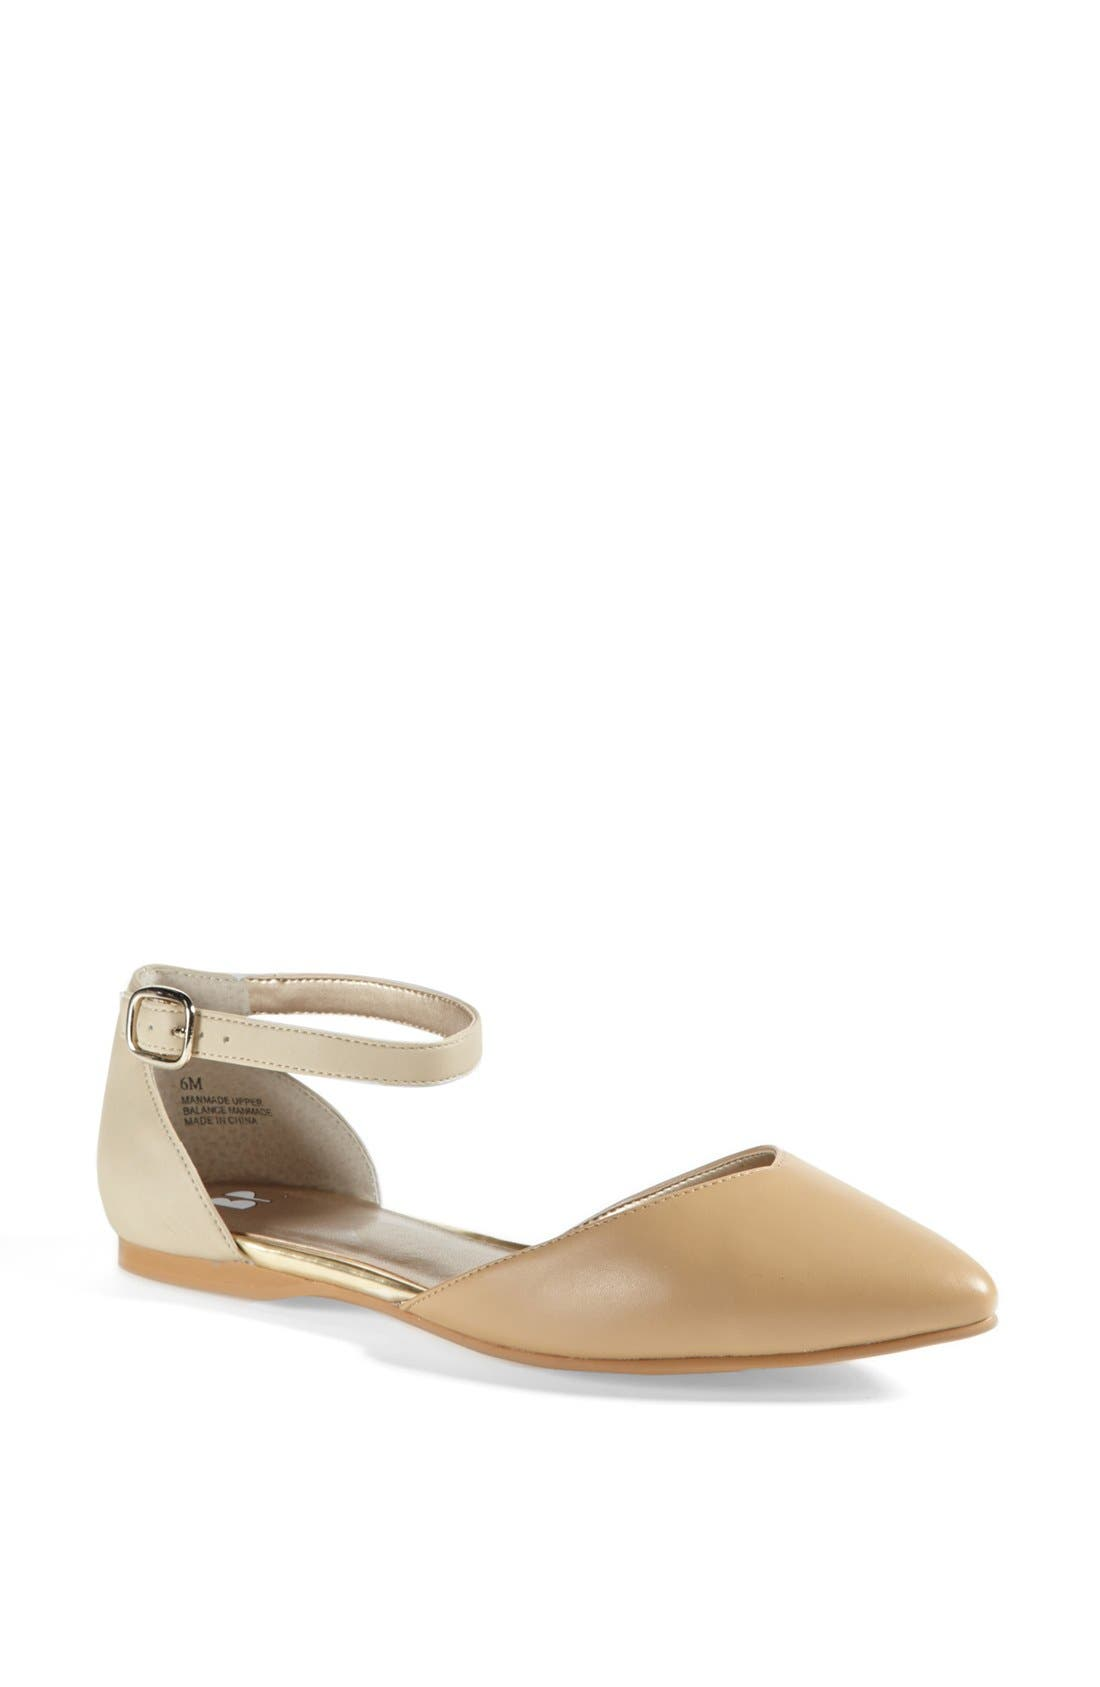 Main Image - BP. 'Gillie' Ankle Strap Flat